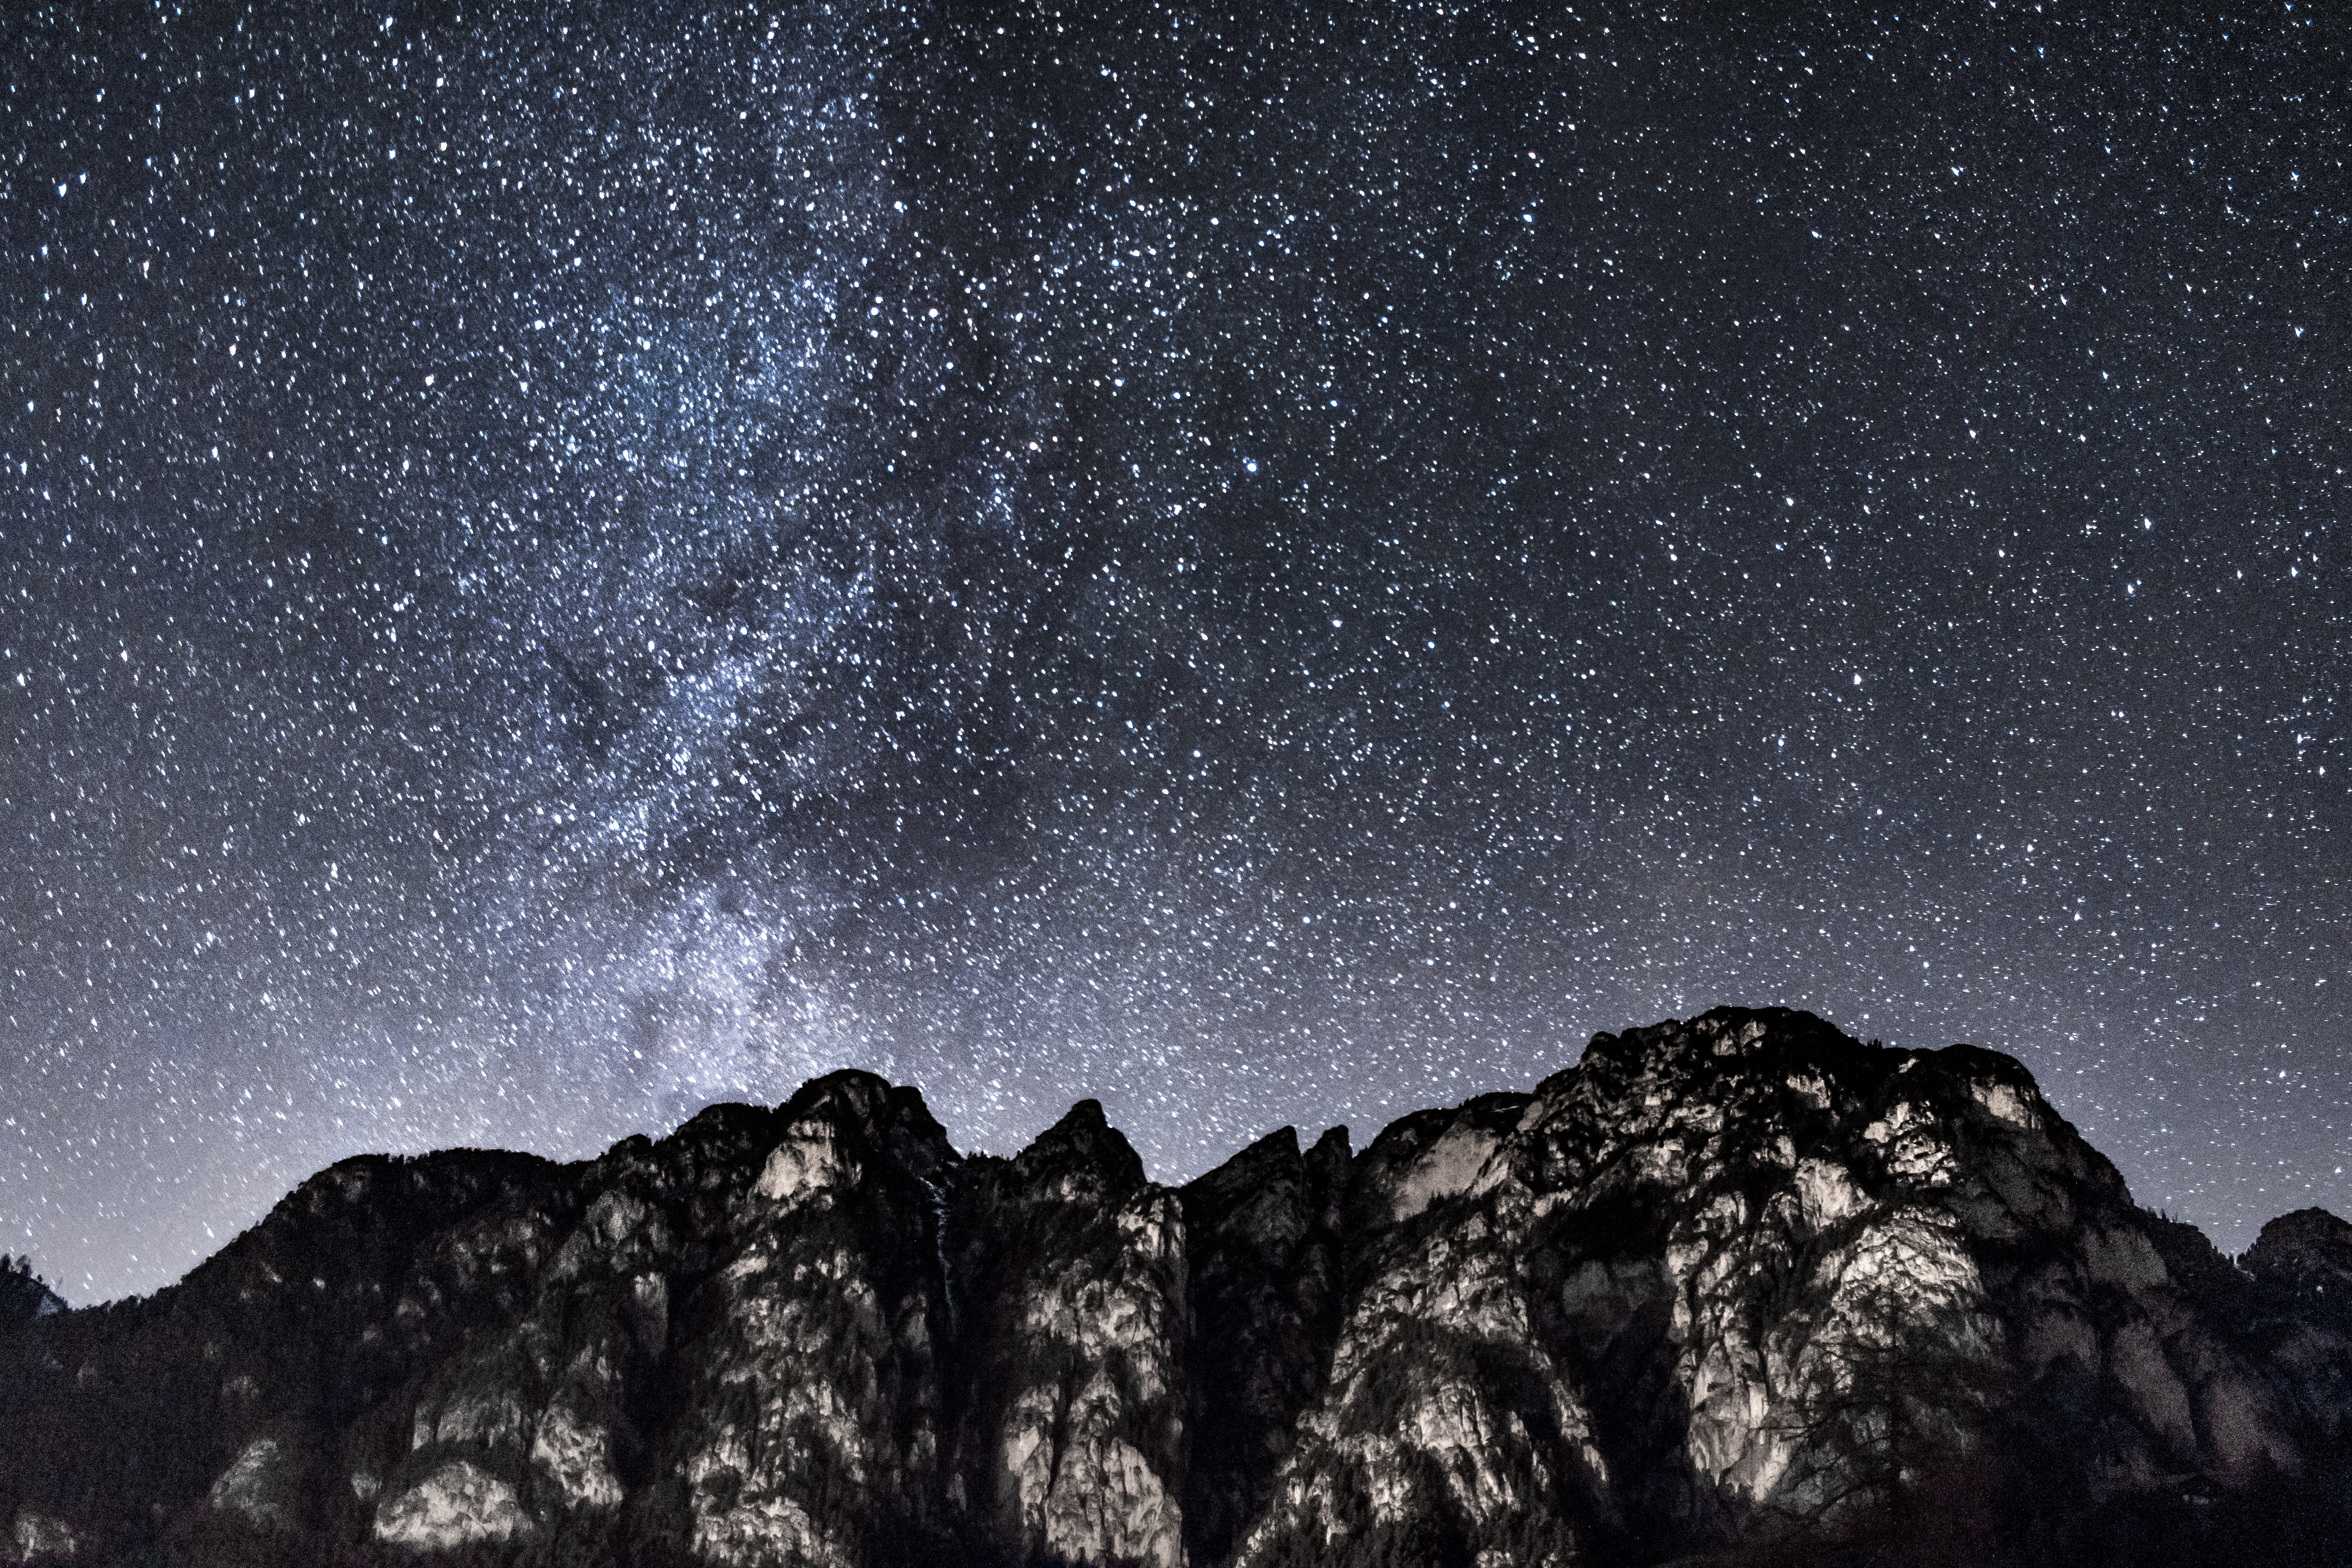 Mountain under starry sky during nighttime photo